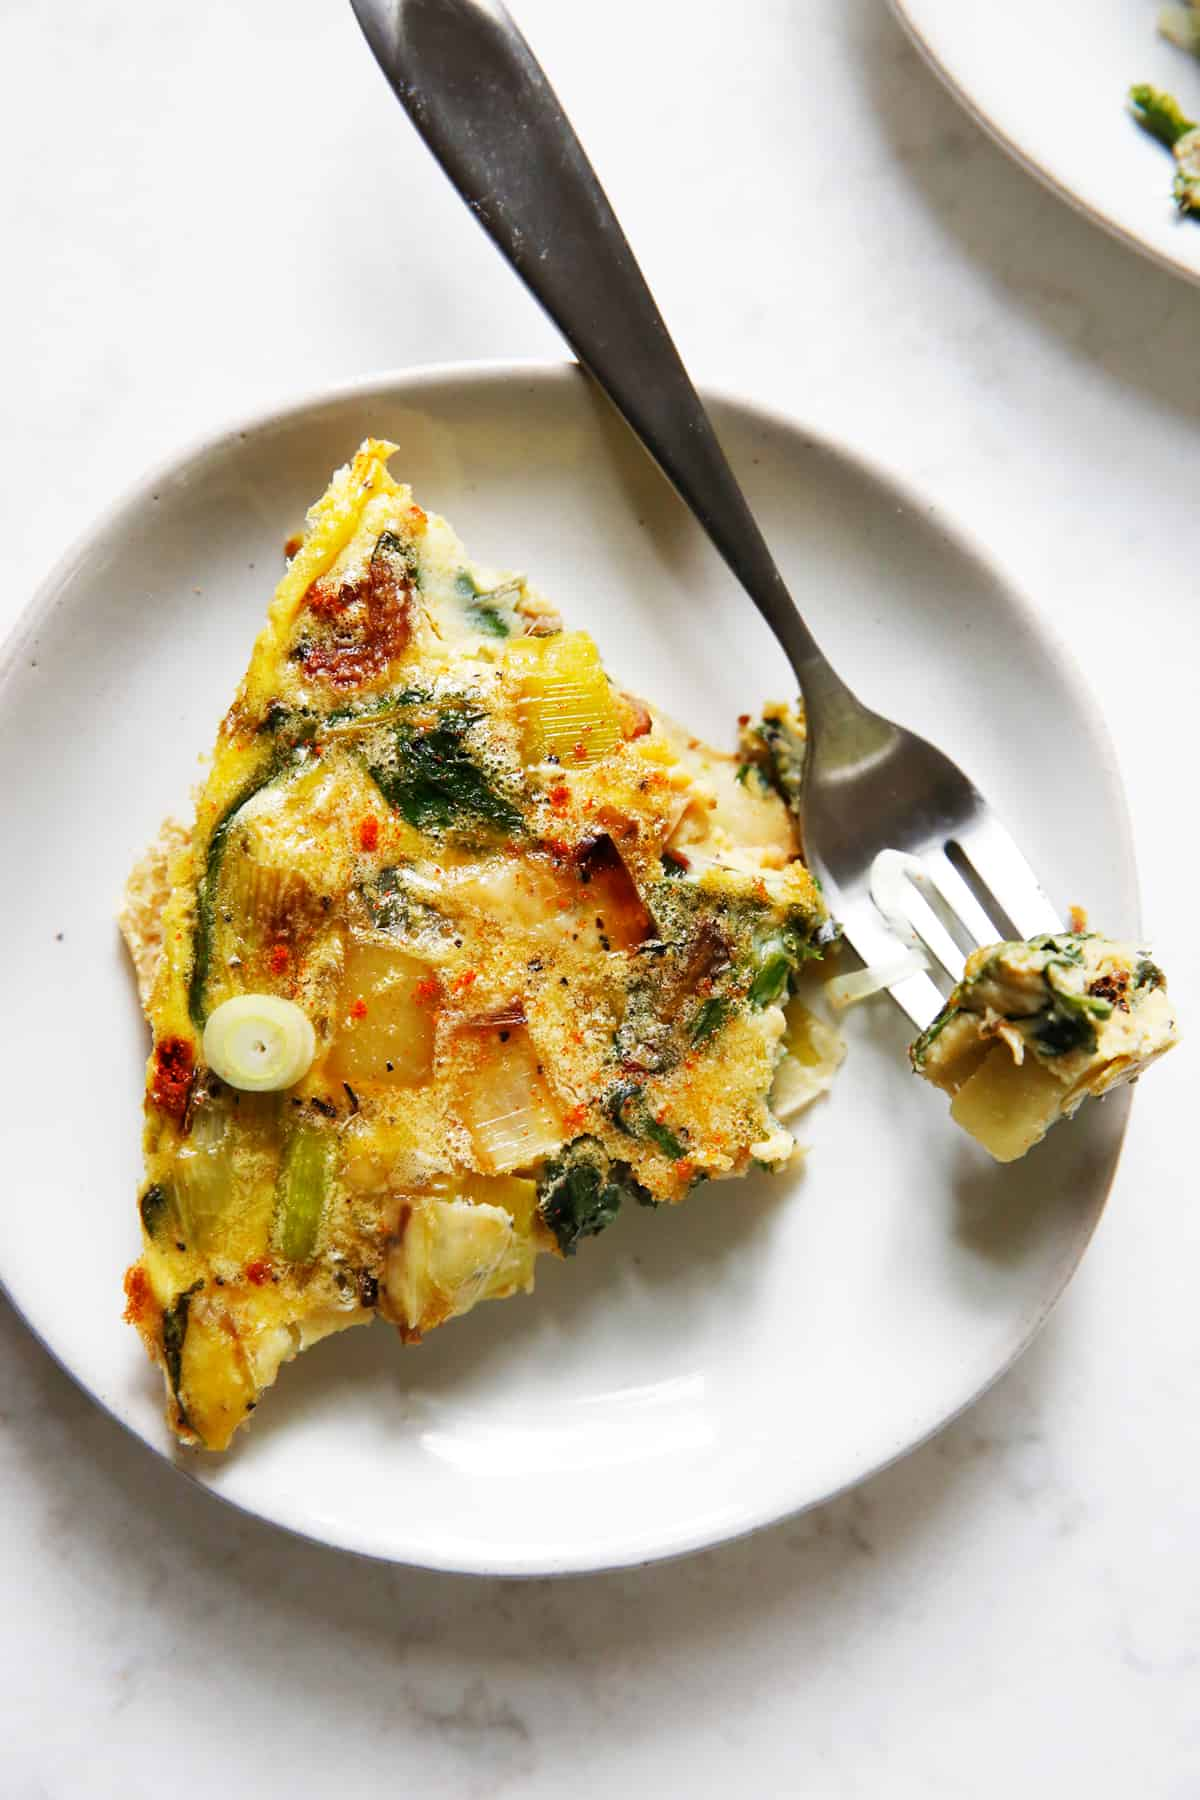 Frittata with leeks, potatoes and Swiss chard on a plate.